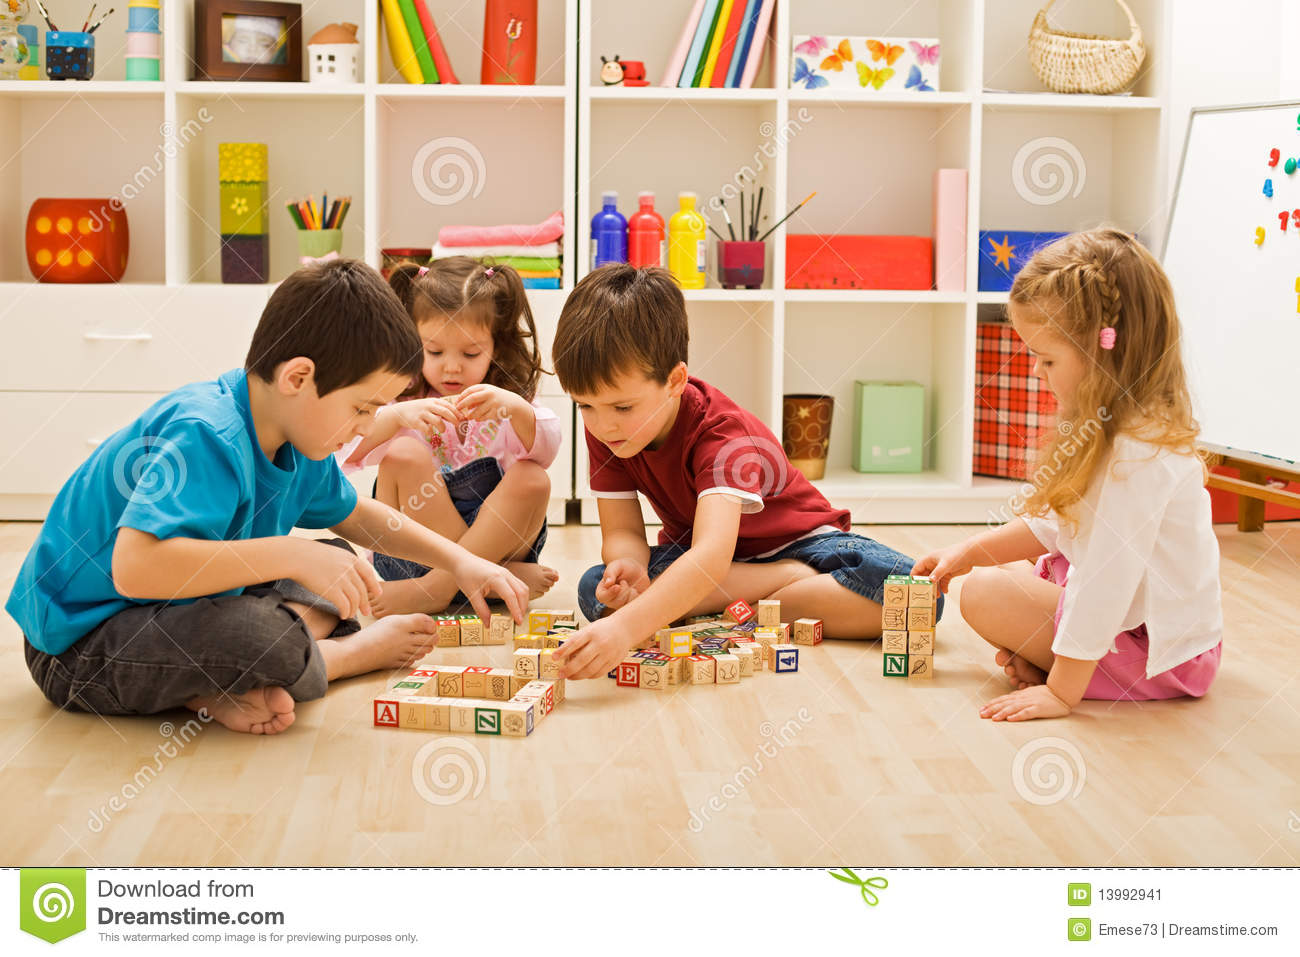 Children Playing With Blocks Stock Image - Image: 13992941